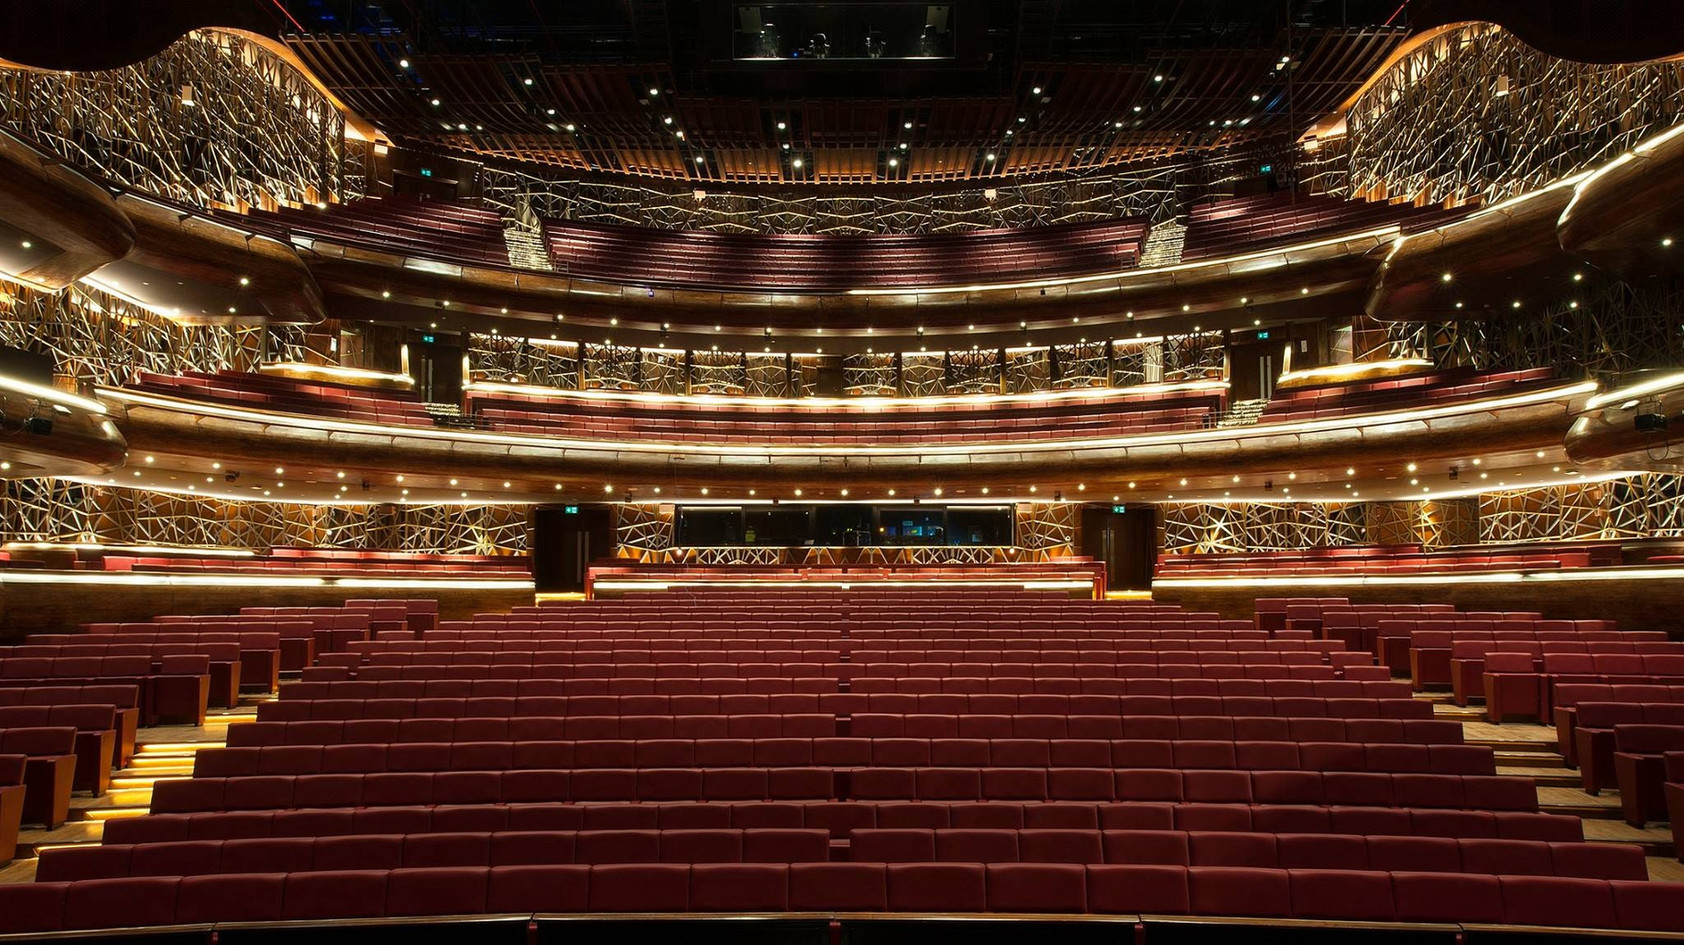 DUBAI OPERA Ultramodern, performing arts facility